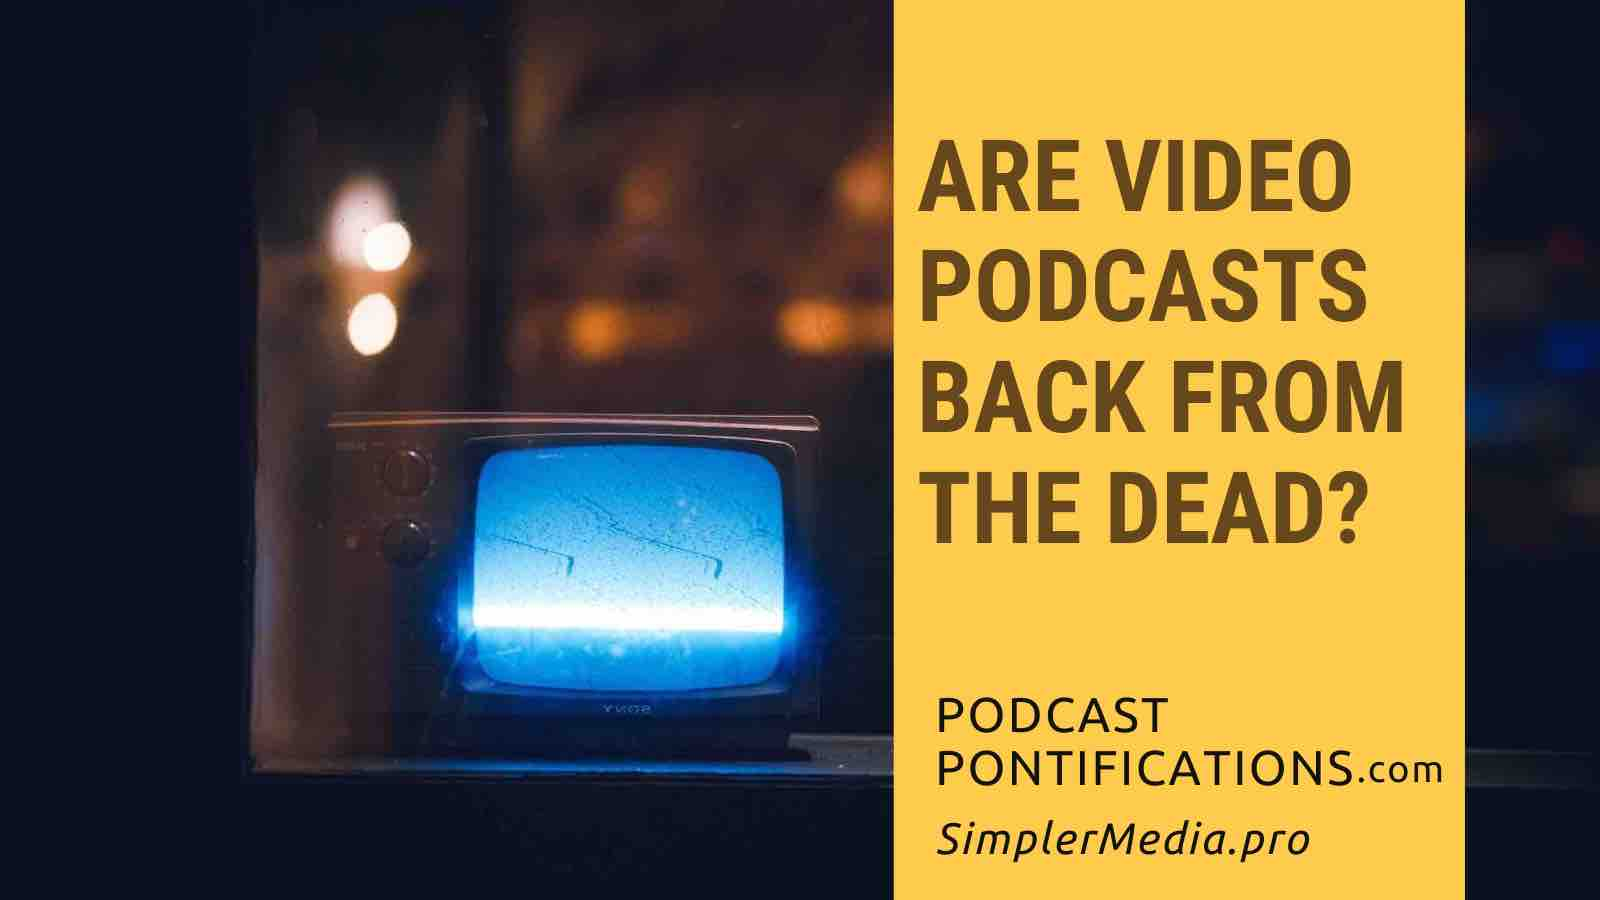 Are Video Podcasts Back From The Dead?